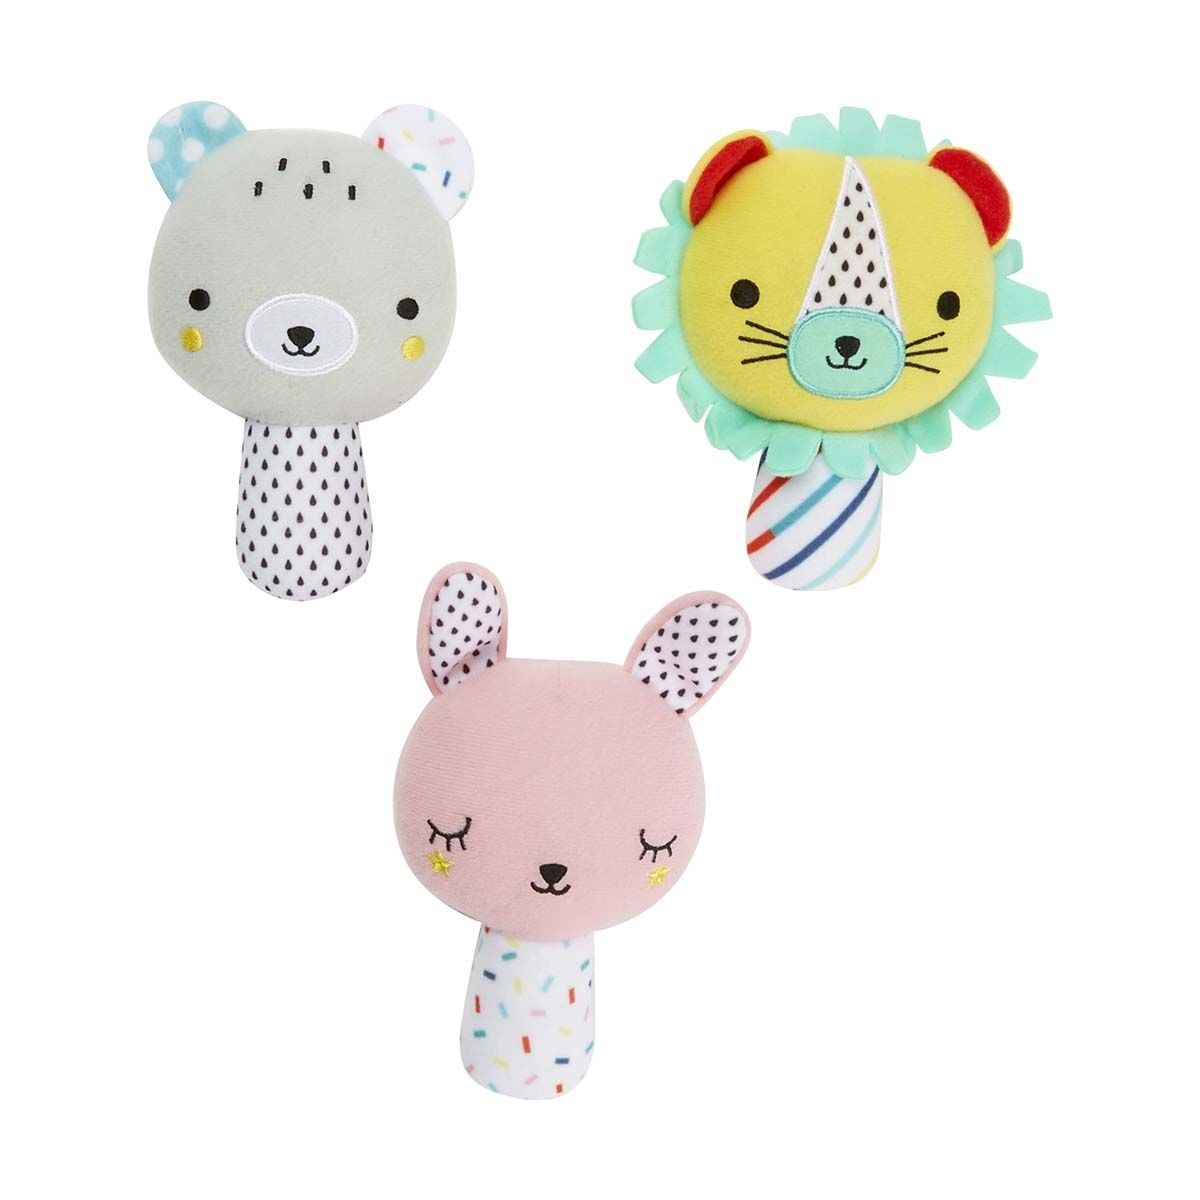 Animal friends plush rattle assorted kmart with